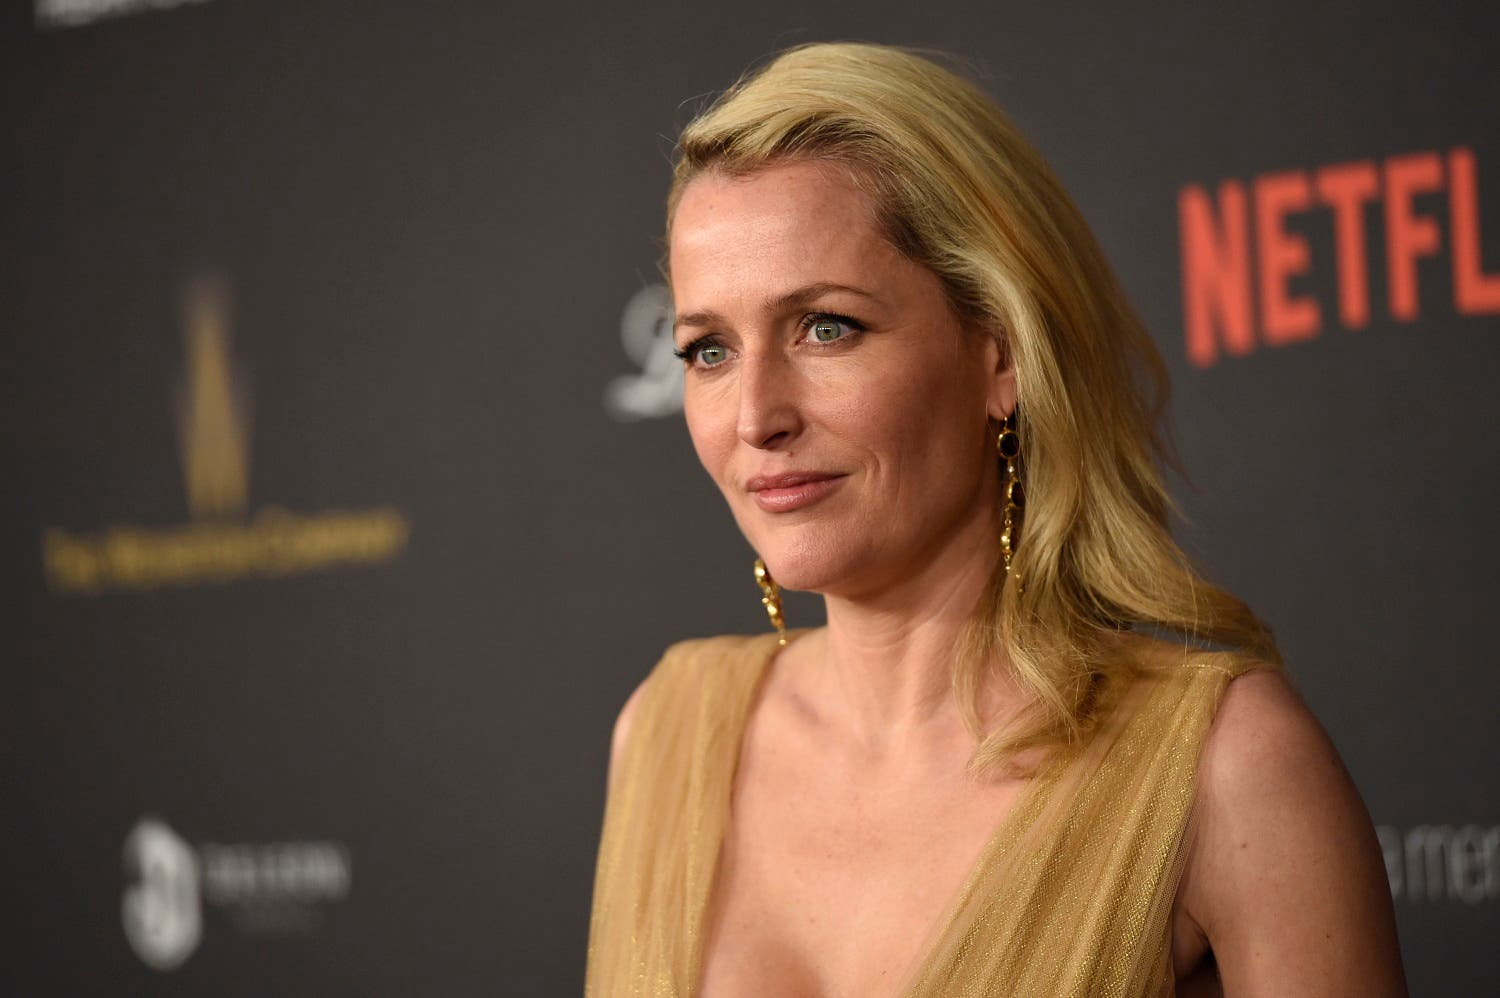 Gillian Anderson arrives at The Weinstein Company and Netflix Golden Globes afterparty on Sunday, Jan. 10, 2016, at the Beverly Hilton Hotel in Beverly Hills, Calif. (Photo by Chris Pizzello/Invision/AP)